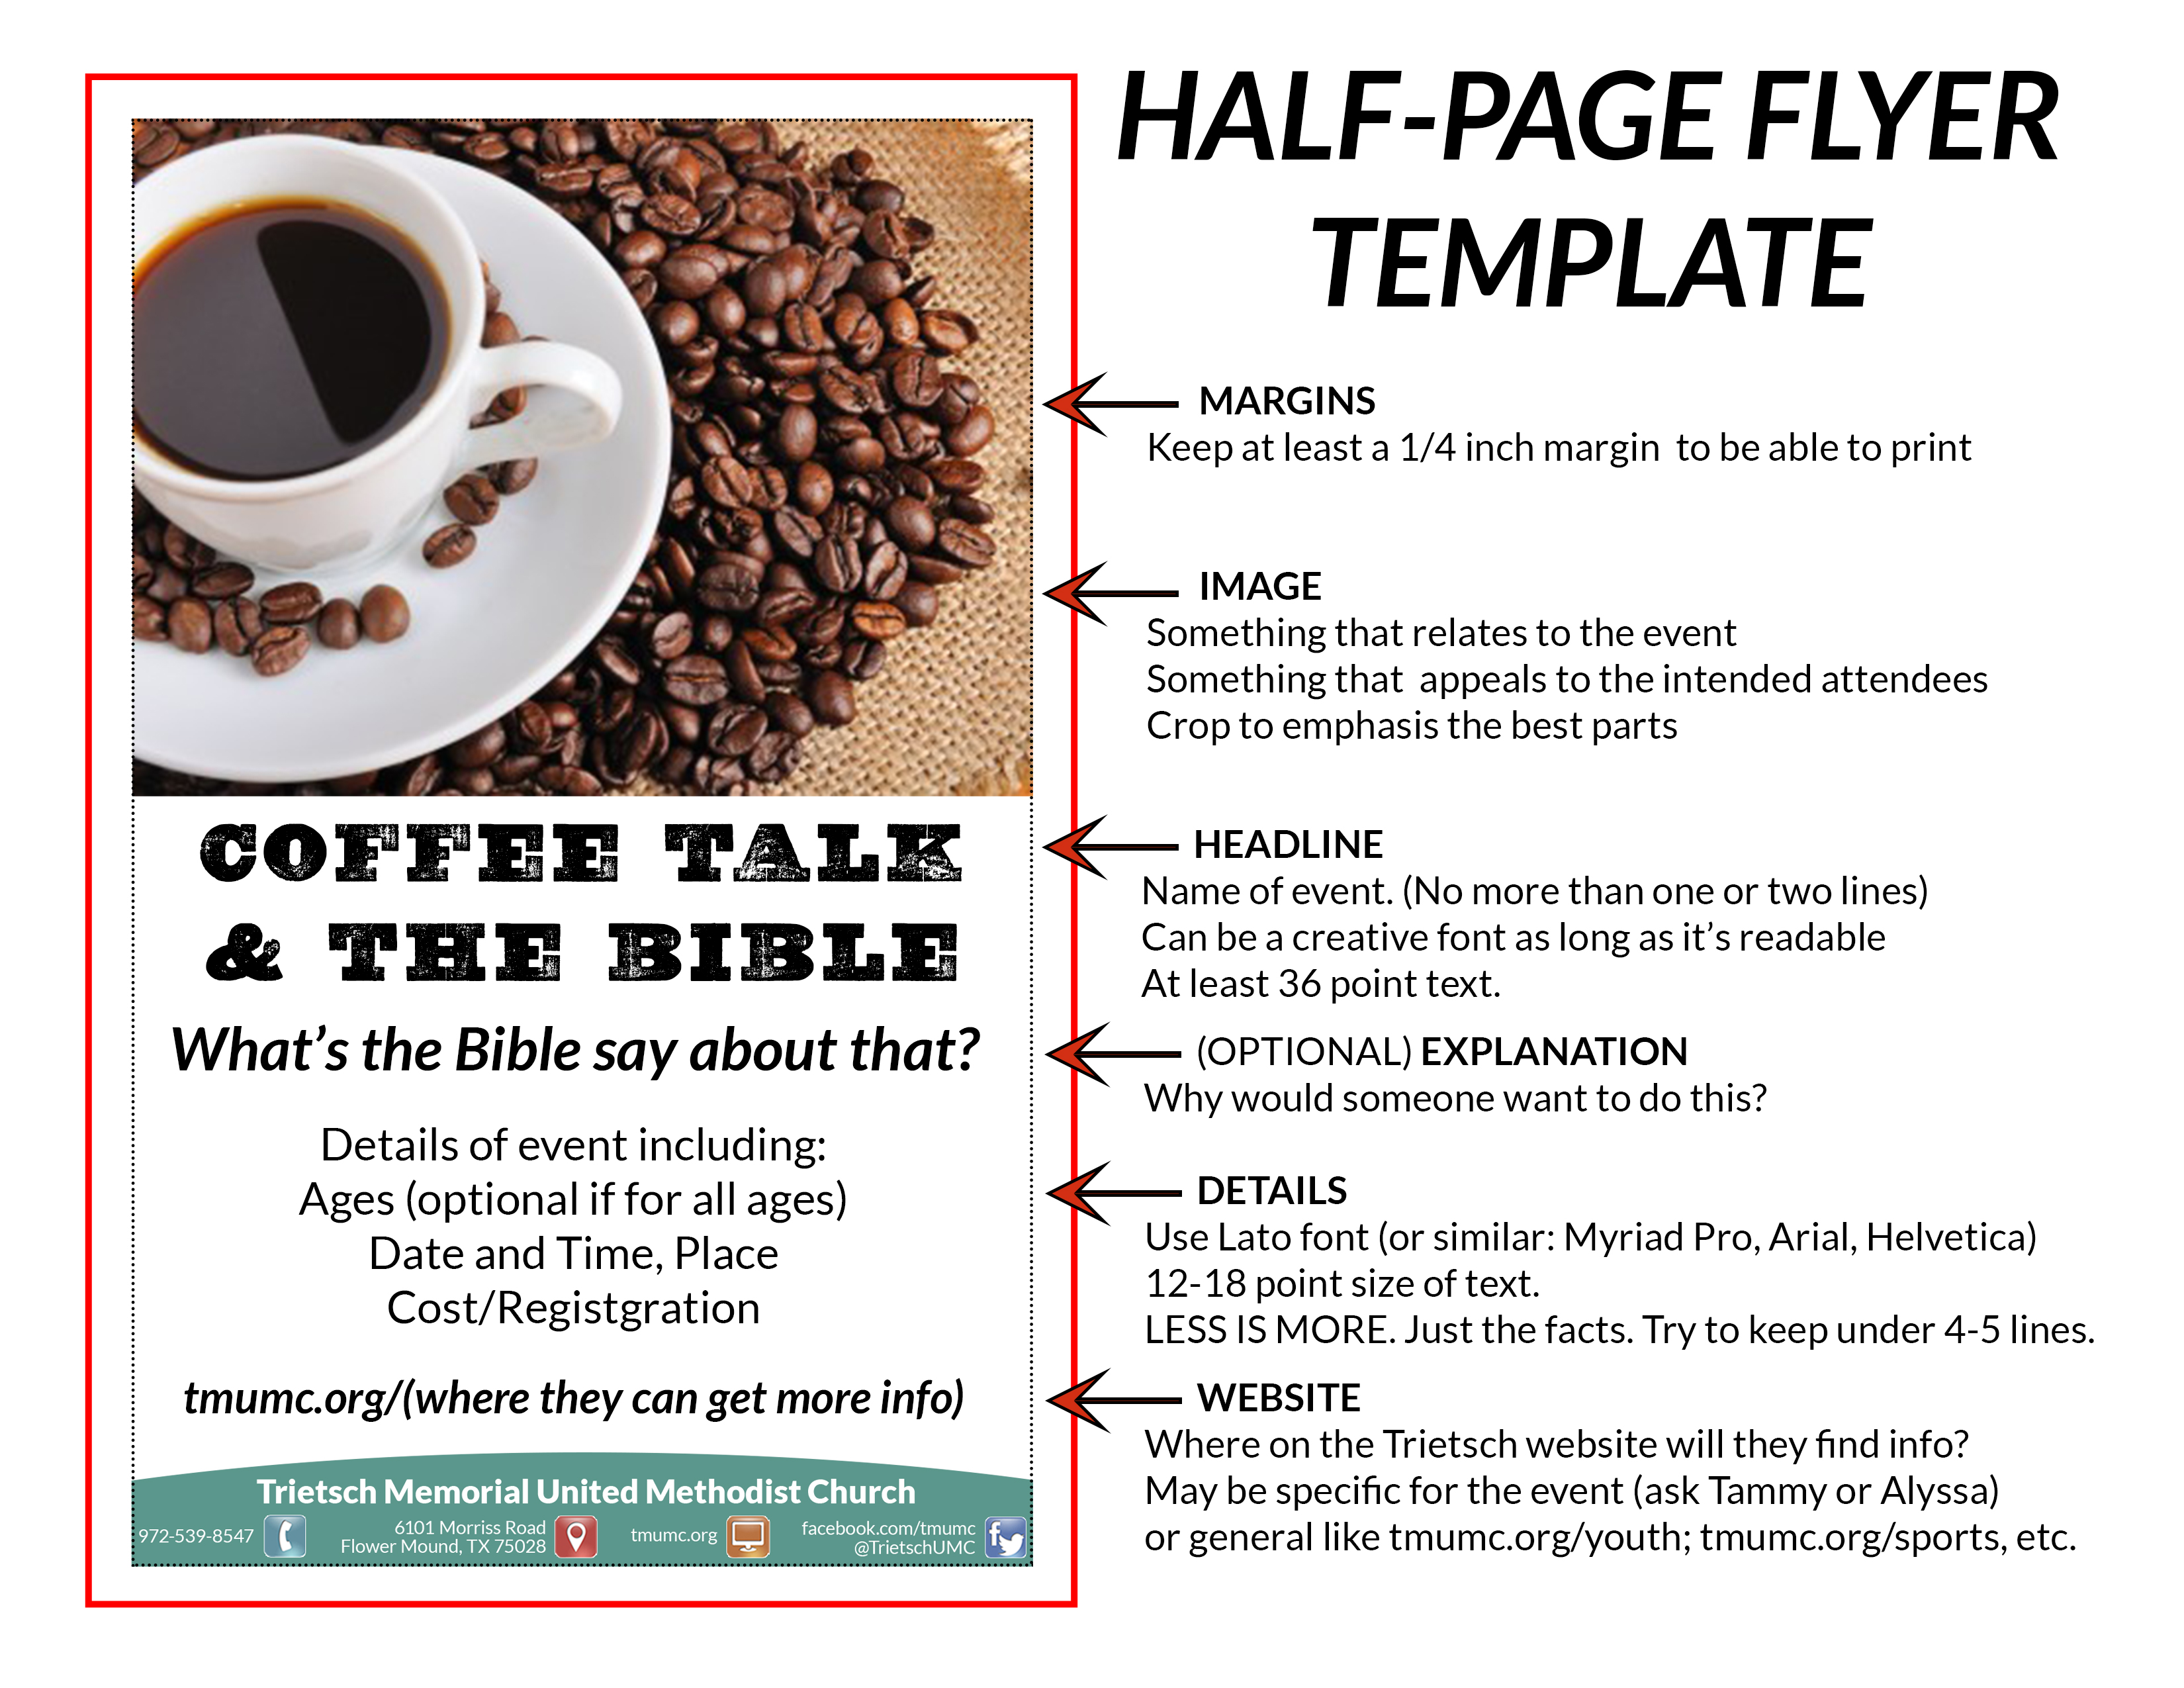 how to make a half page flyer in word